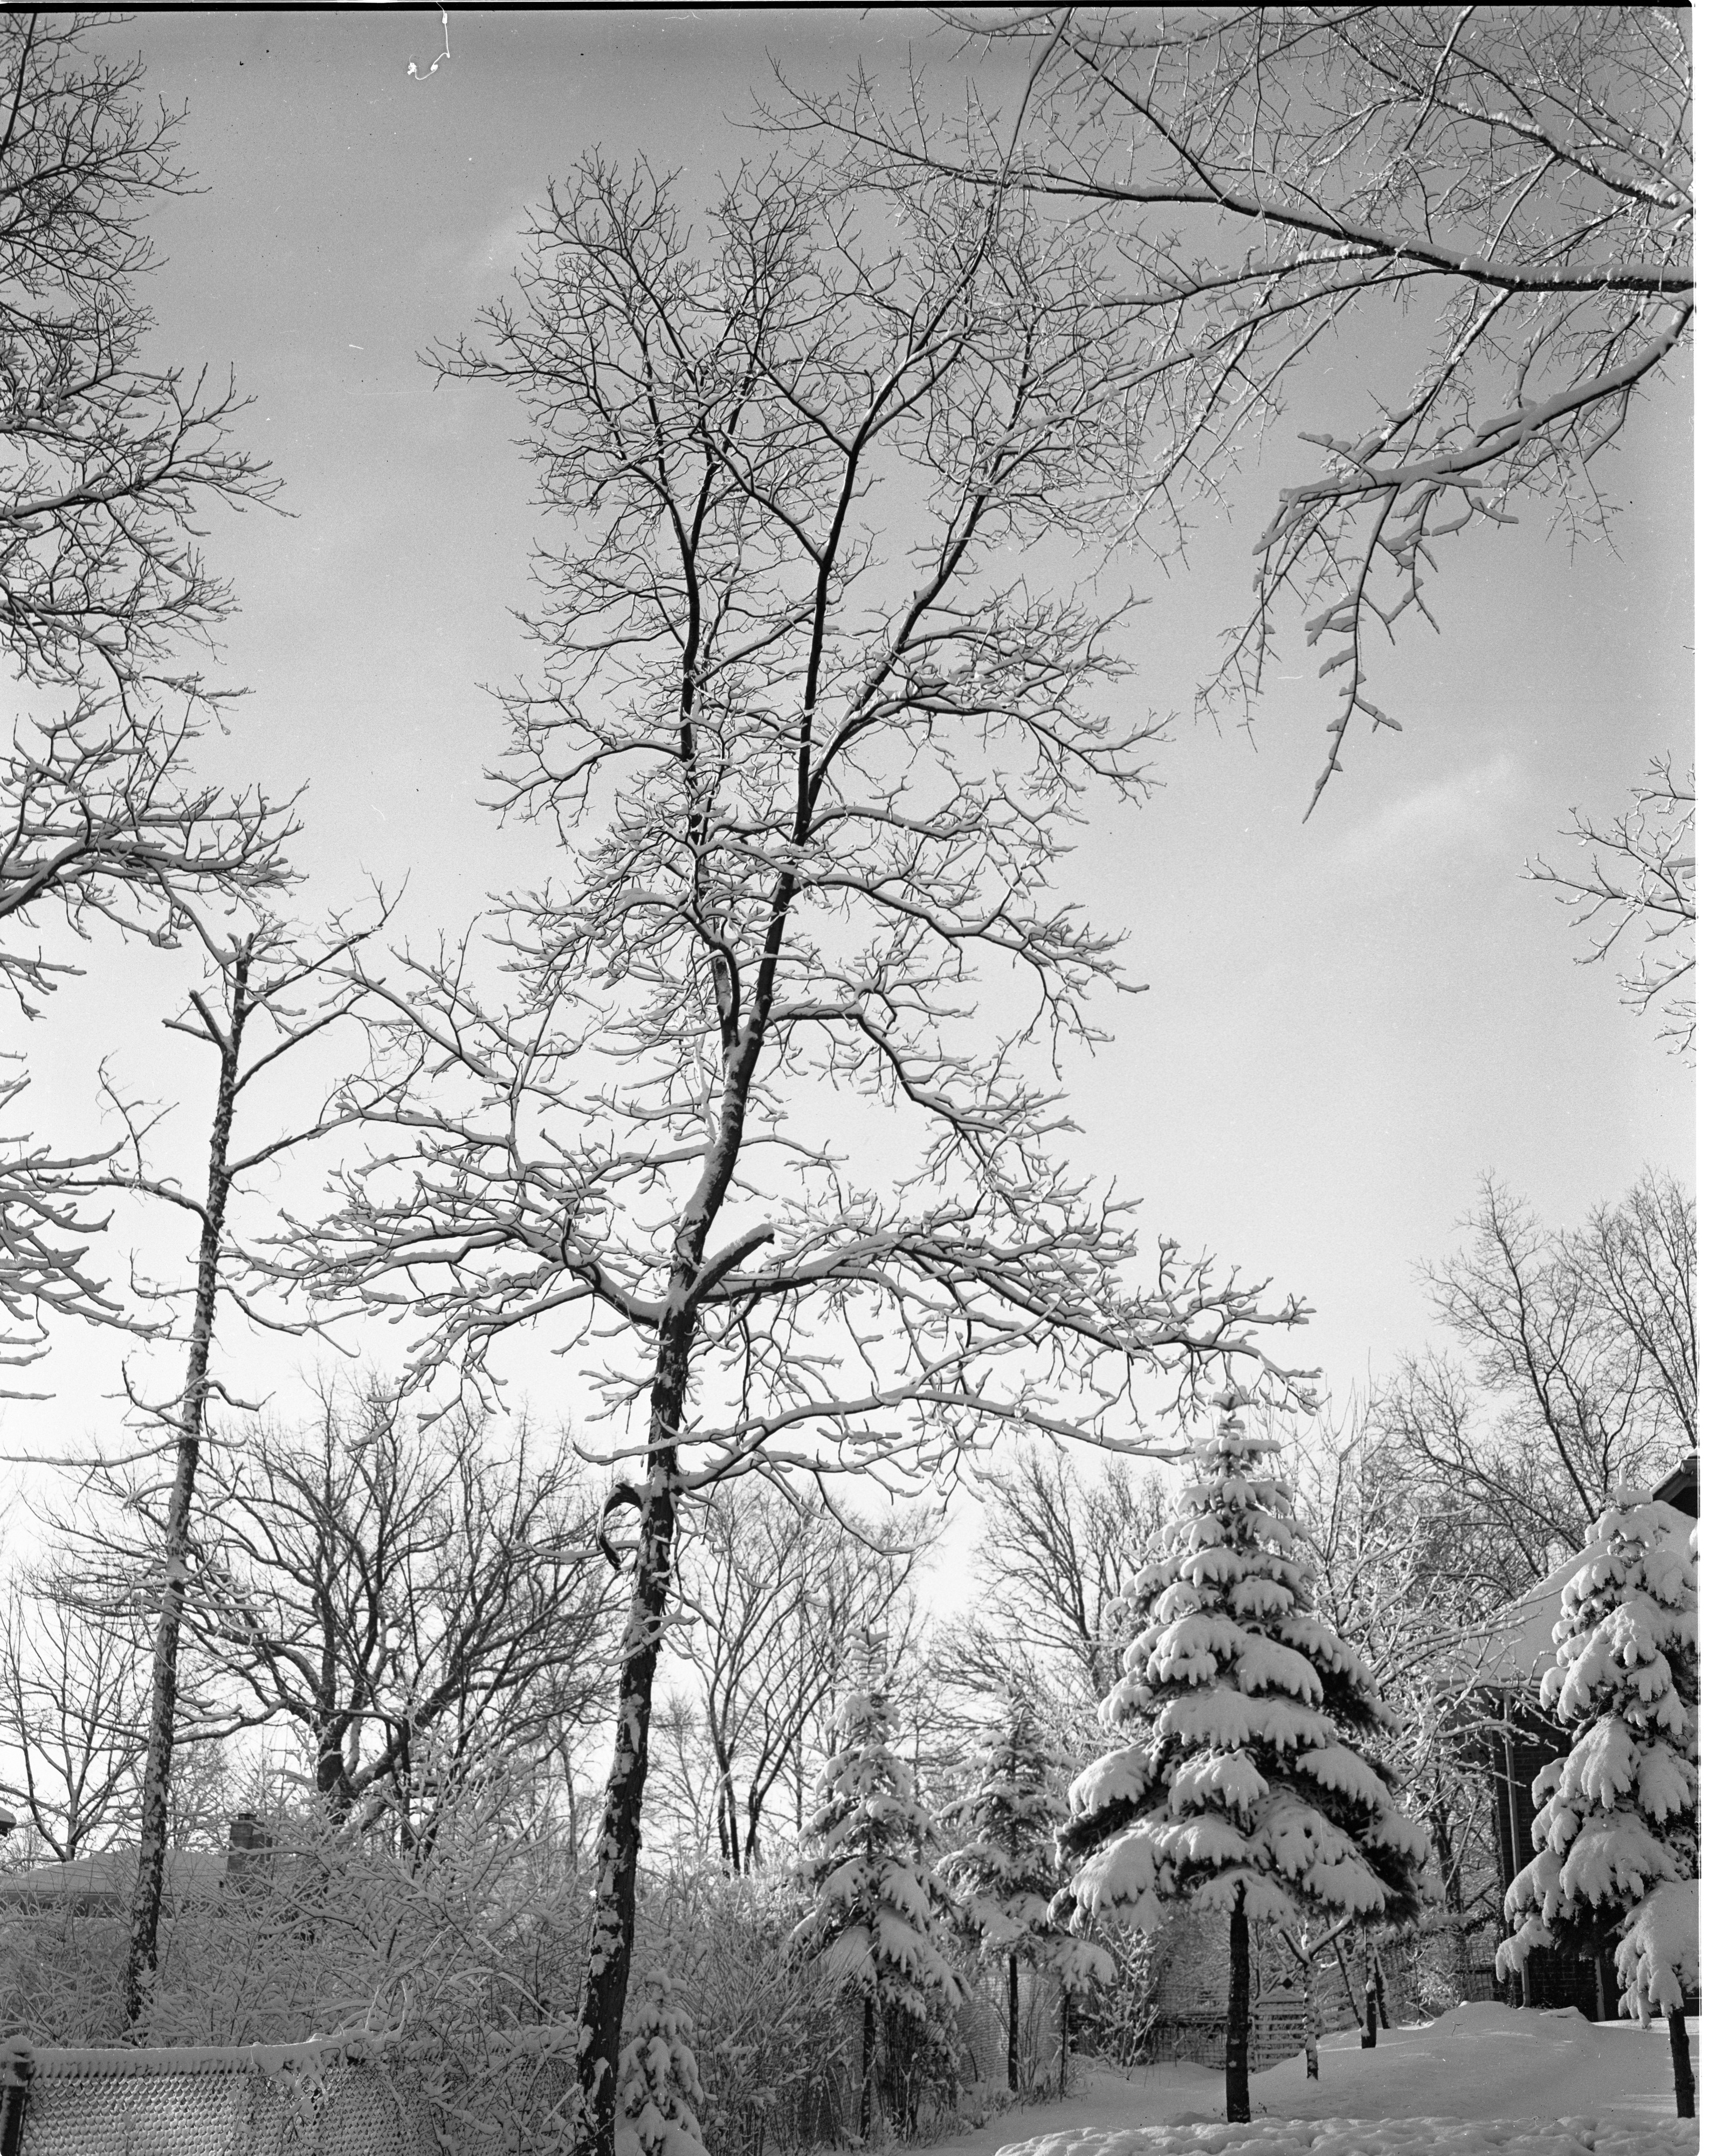 Trees Covered In Fresh Snow On Berkshire Road, February 1957 image